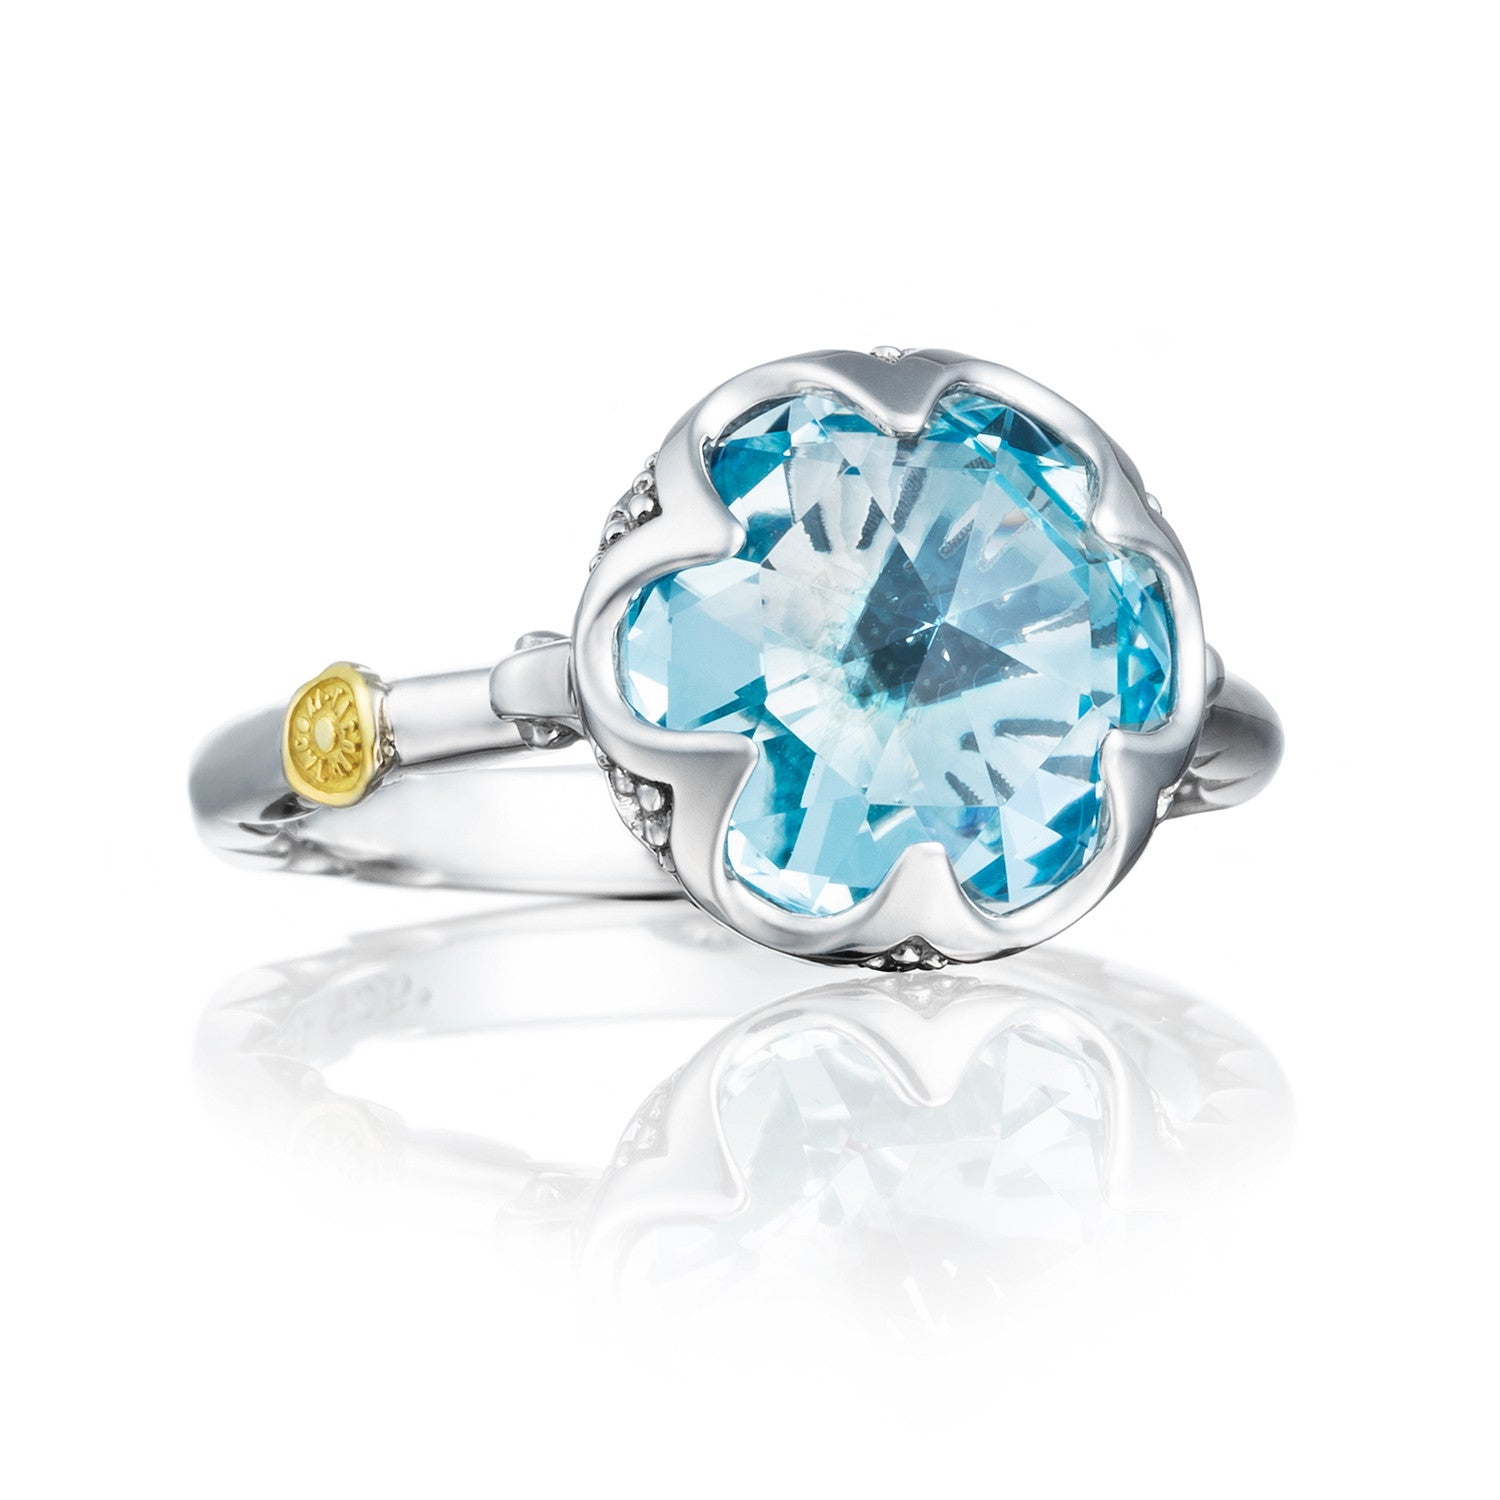 shaped rings zoom with blue mv diamonds gold ring kaystore pear white zm en kay hover topaz to